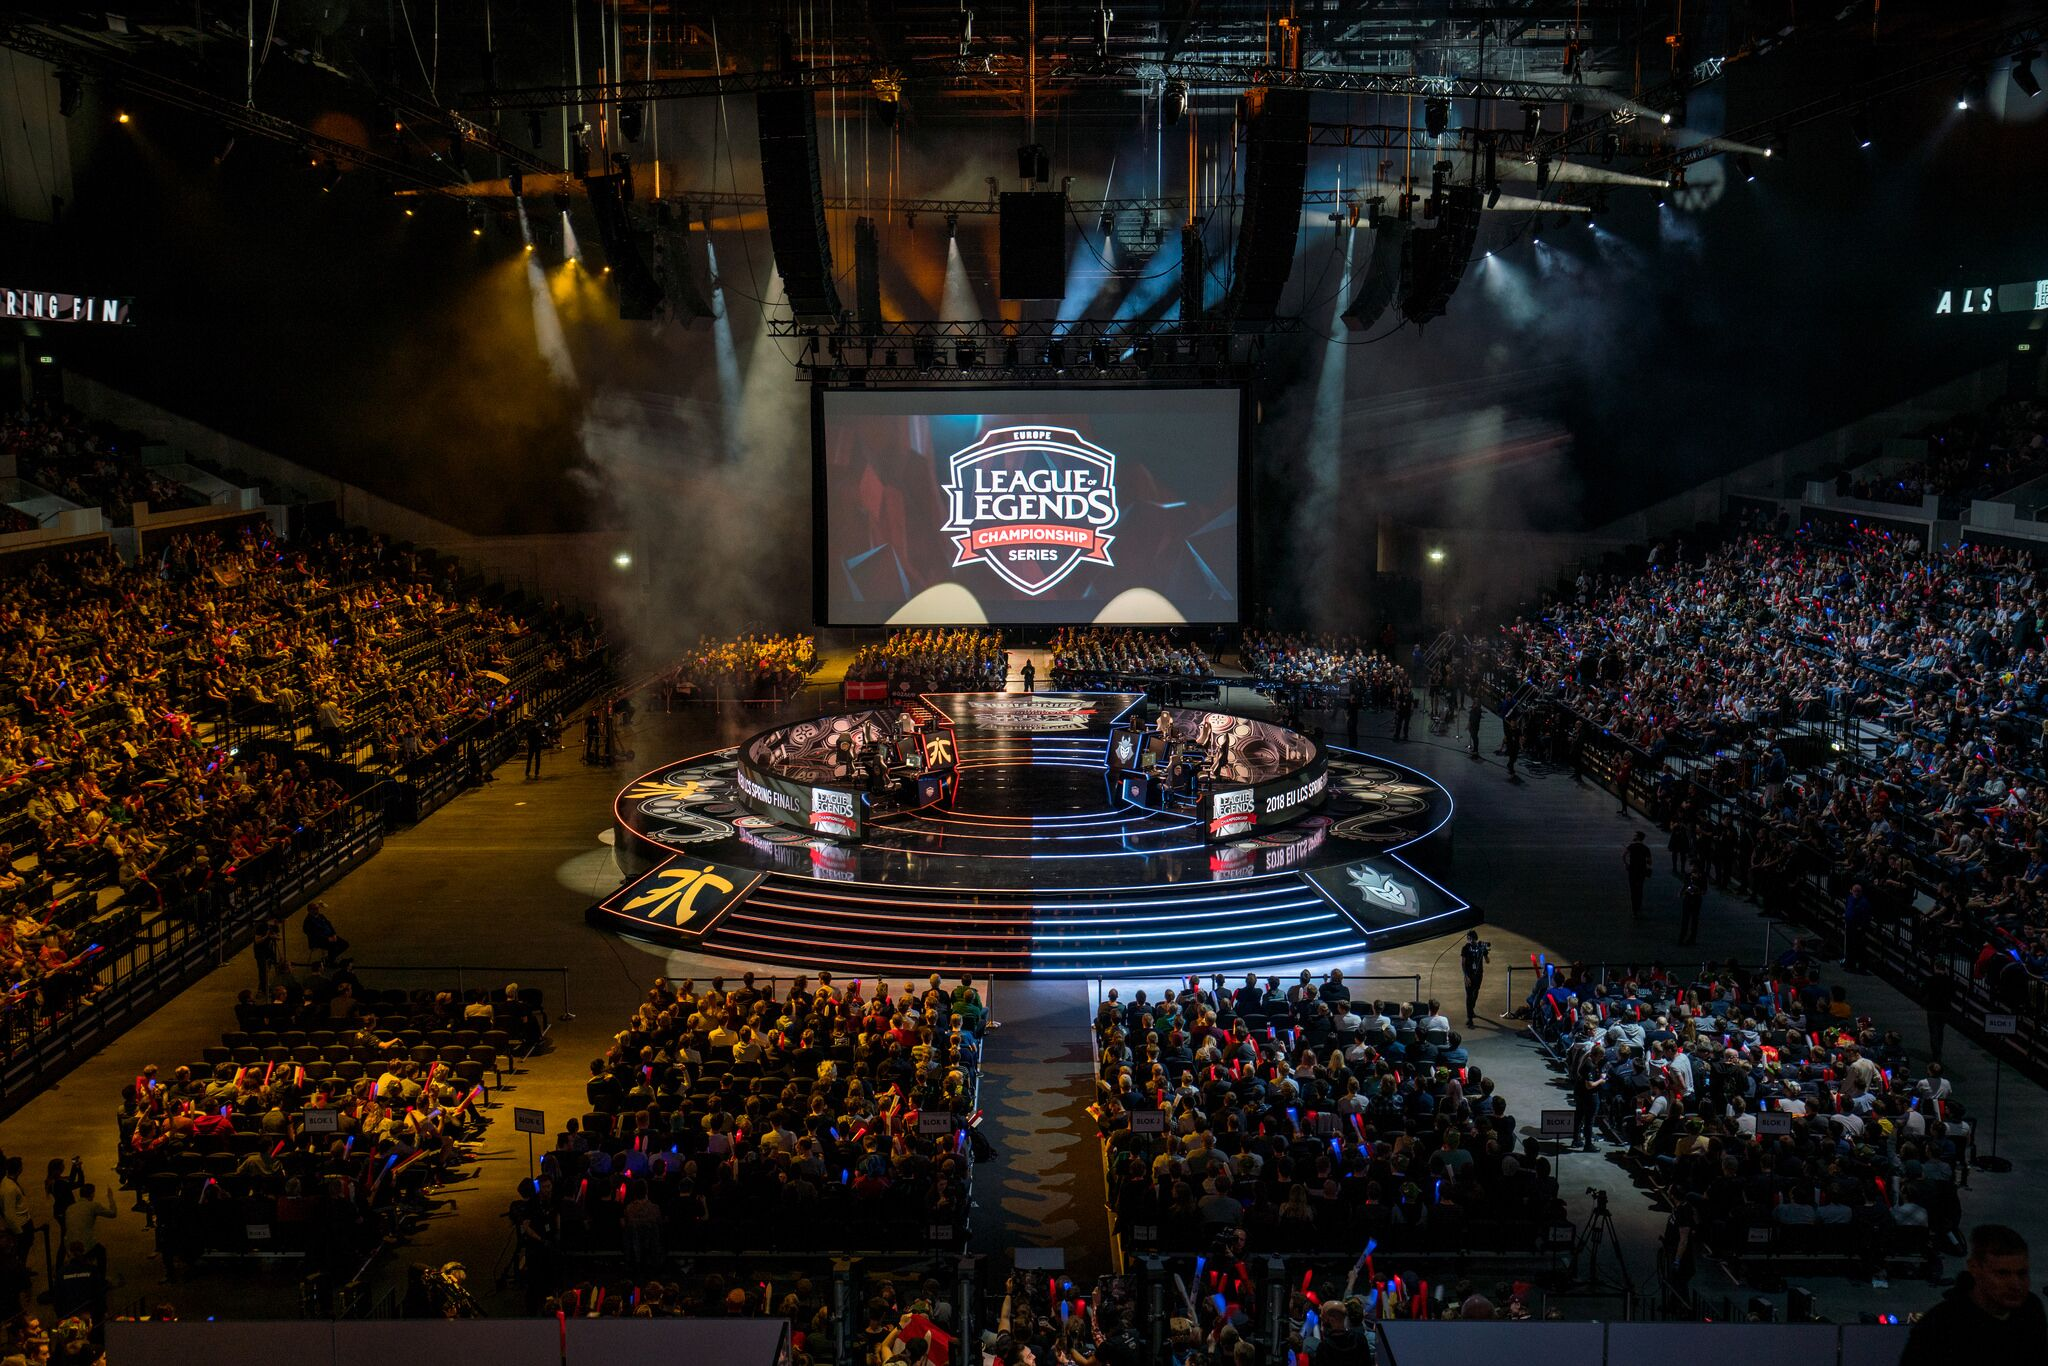 League Of Legends Europe